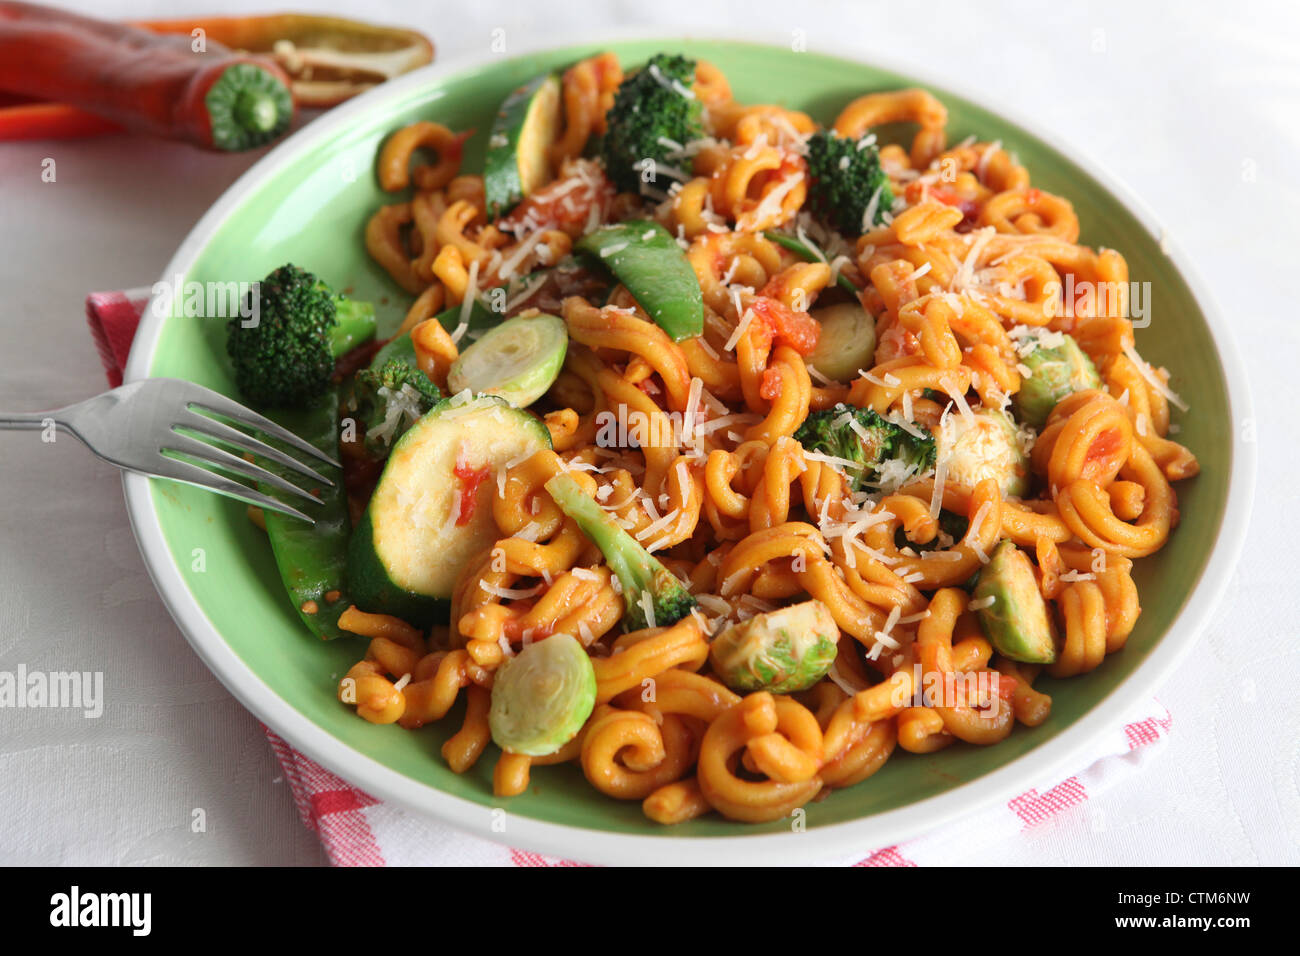 A plate of Macaroni pasta with tomato sauce - Stock Image